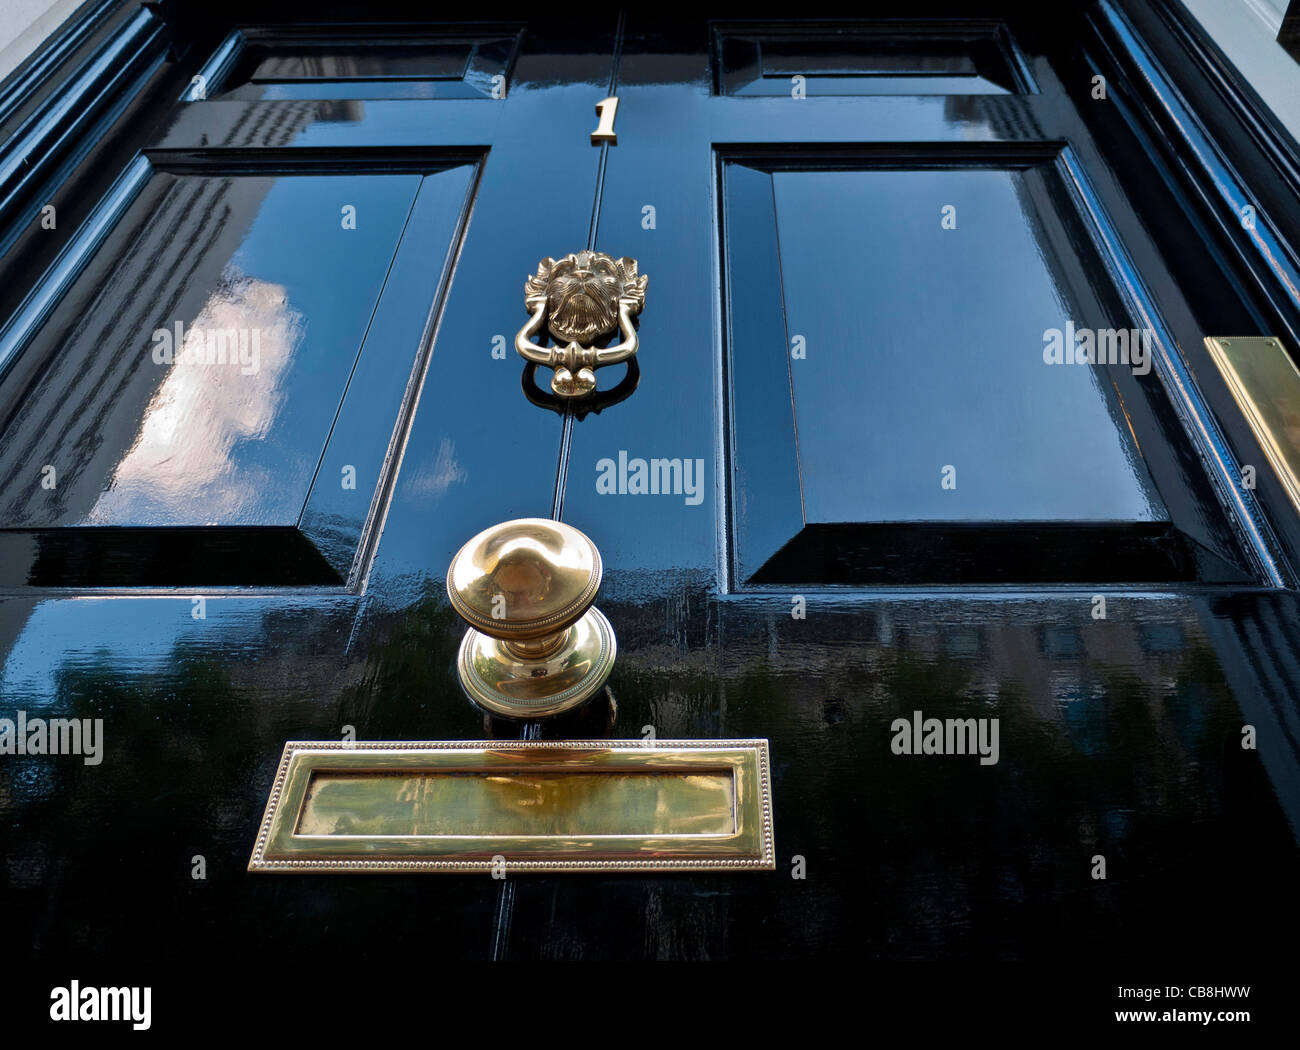 An imposing black paneled Georgian front door 'Number 1' with traditional brass fittings London England - Stock Image